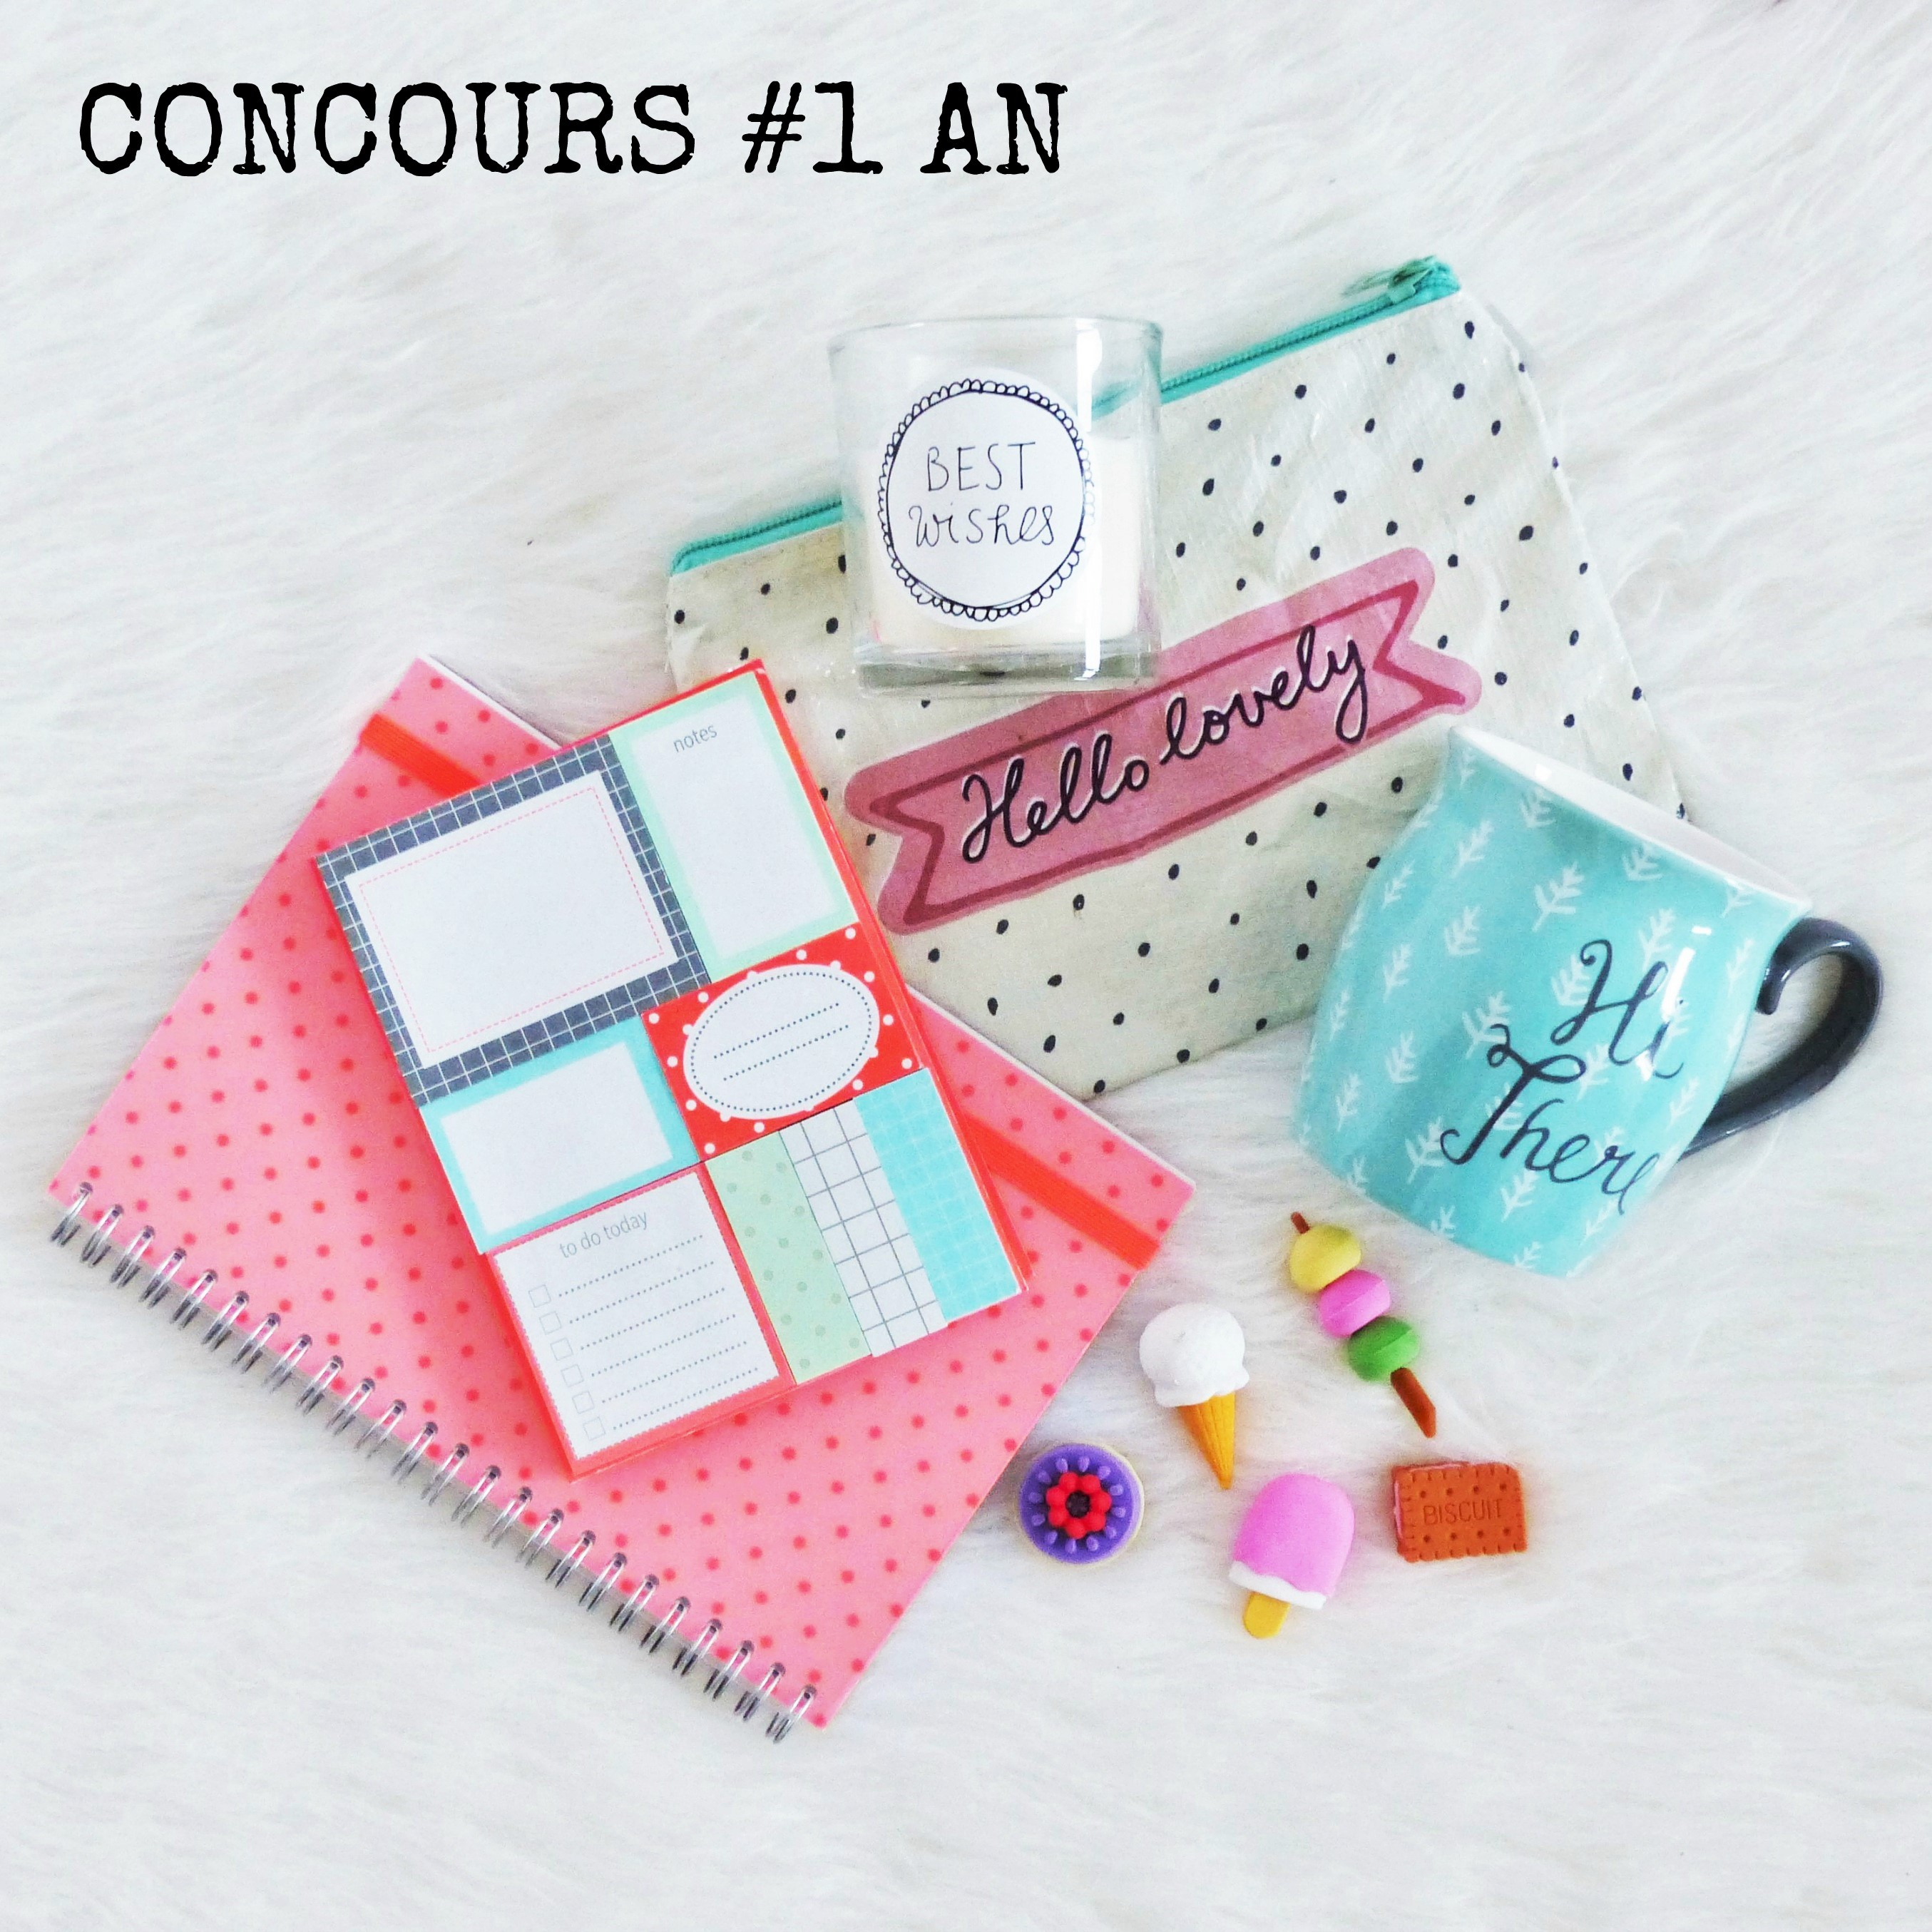 Concours 1 an